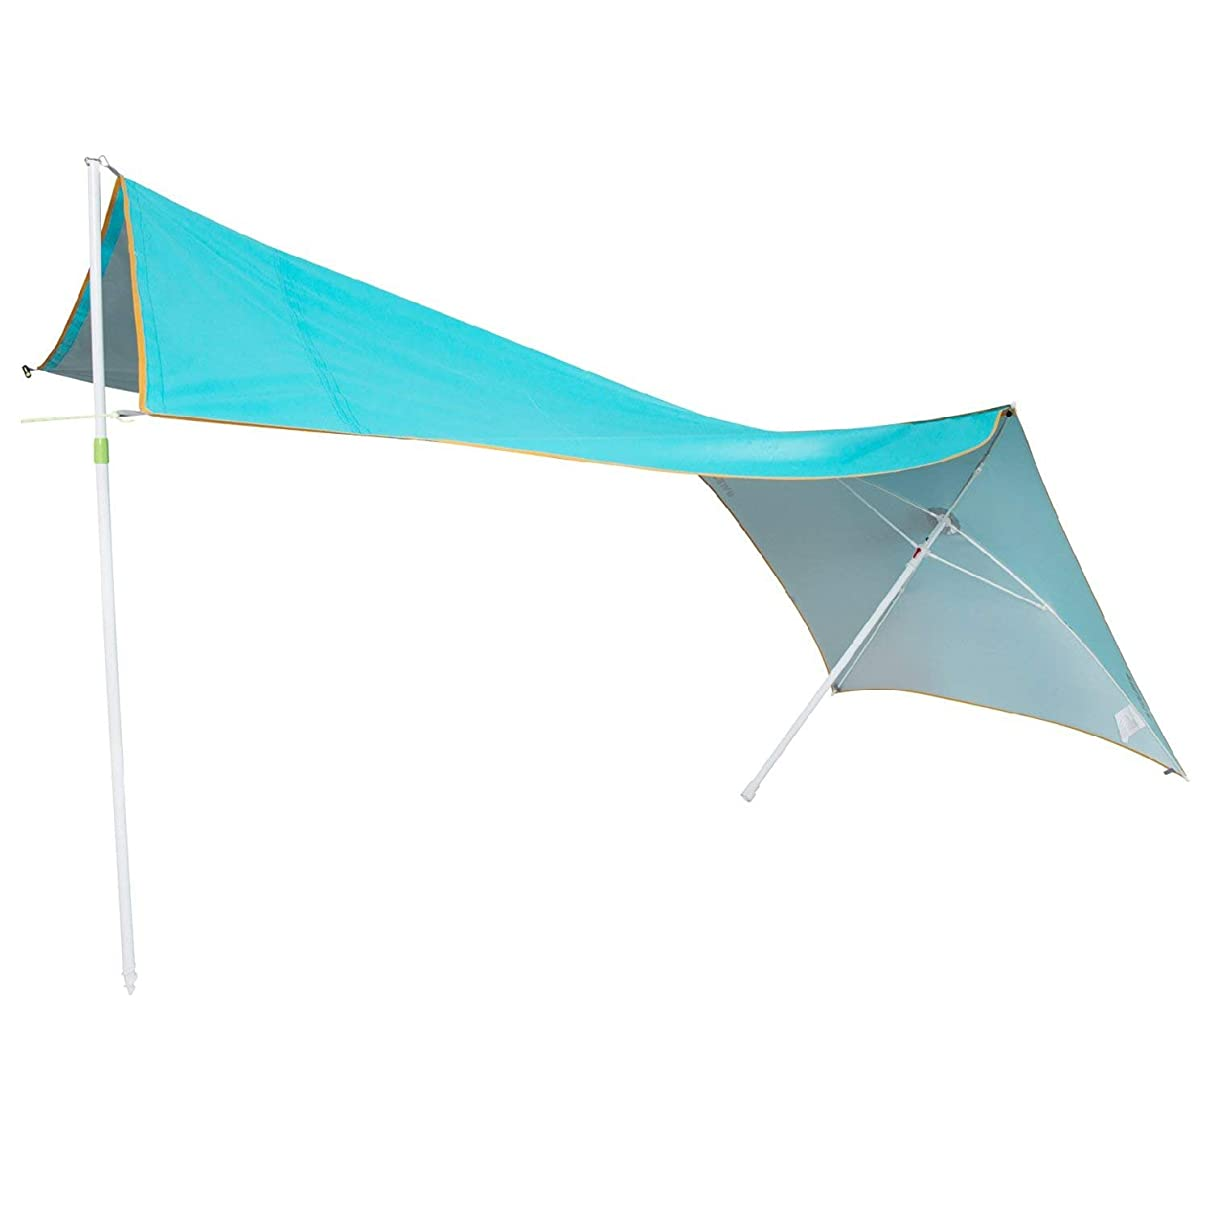 #WEJOY Beach Umbrella 2-3 Person Multi-Function Sun Shelter UV Protection Canopy Quick Cabana Sail Tent with Sand Anchor, Easy Set up Carry Bag Included